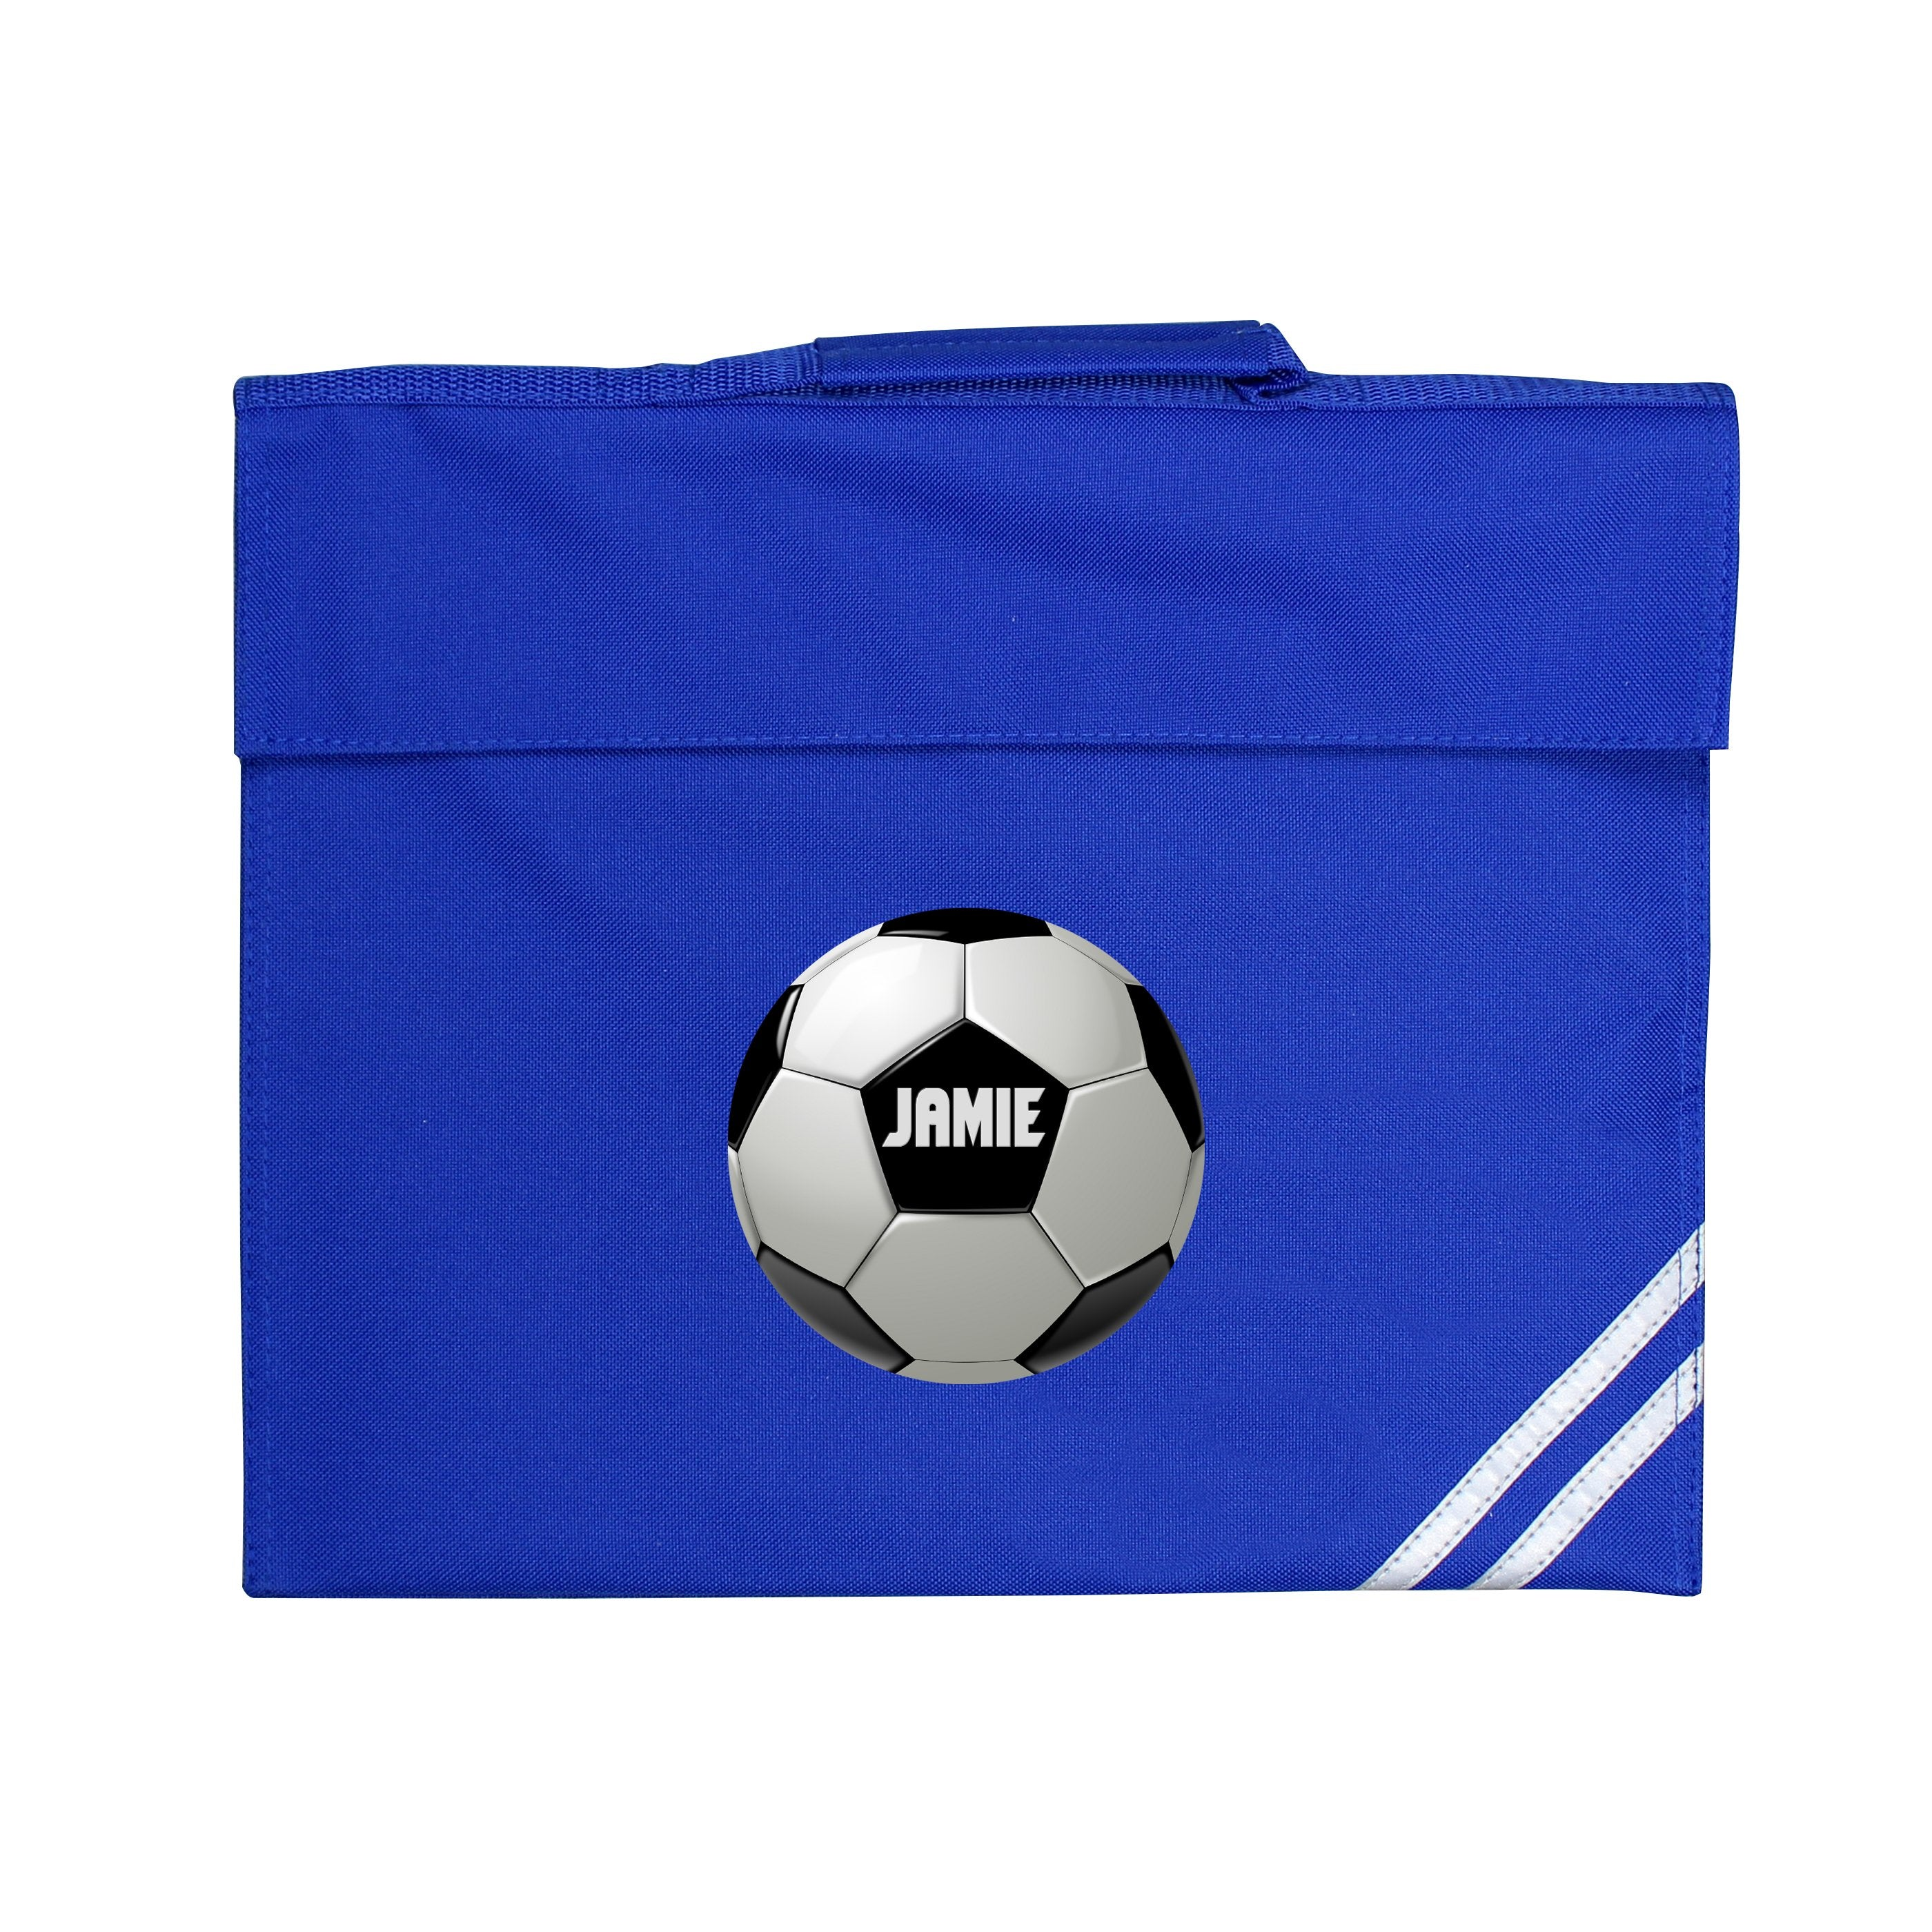 Personalised Football Blue Book Bag - Shop Personalised Gifts